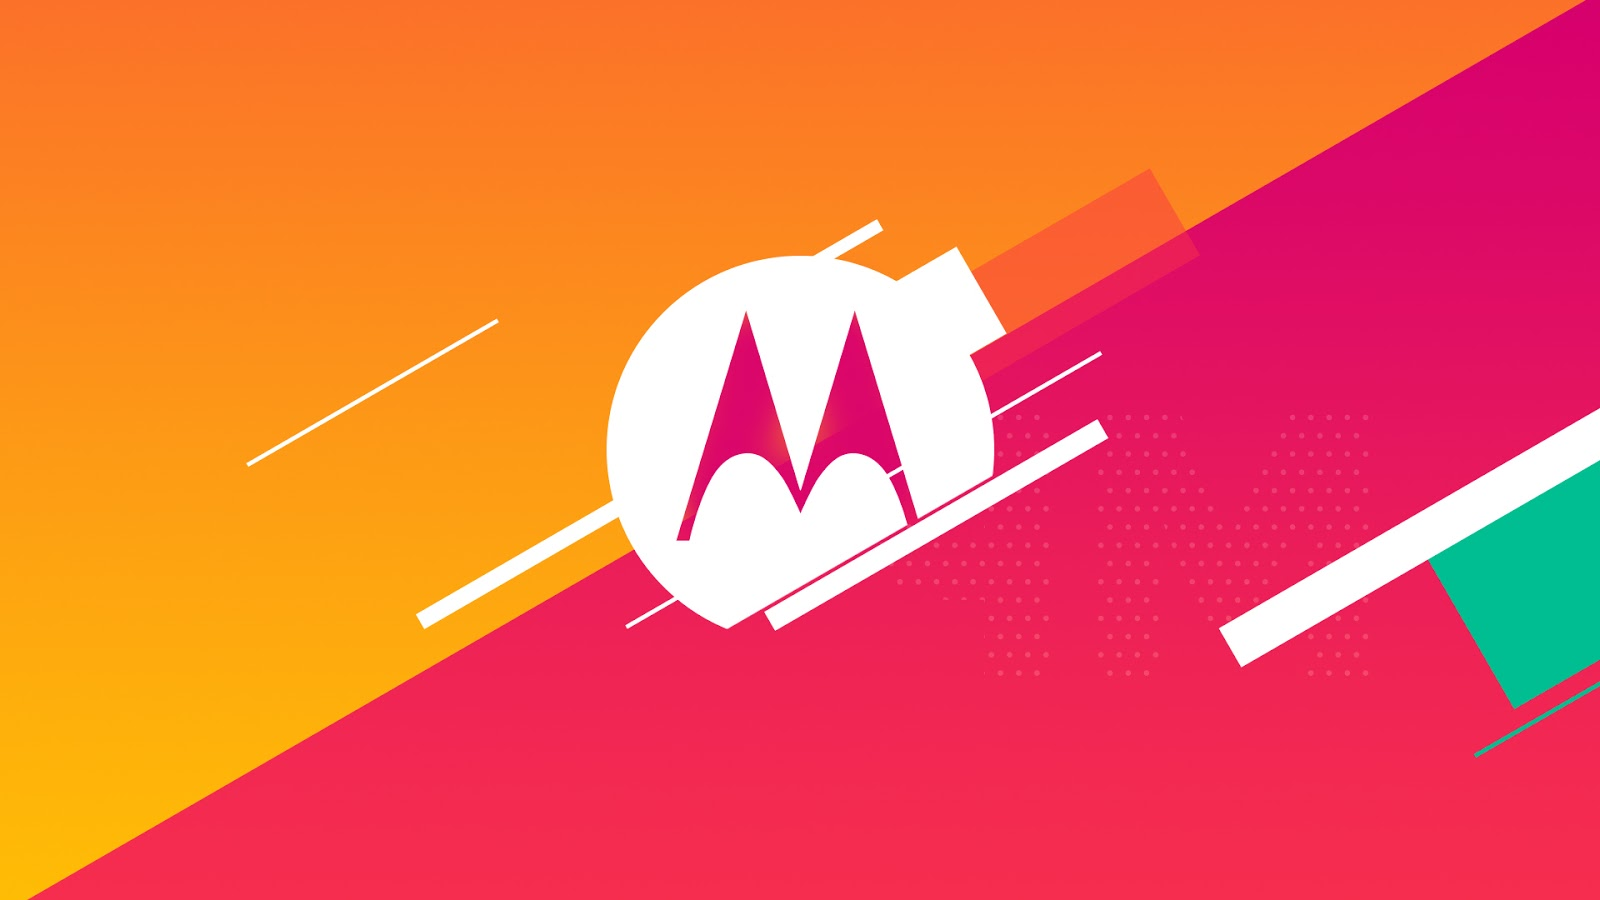 This week in MOTO: software updates, Moto C and new home products - Motorola Lovers